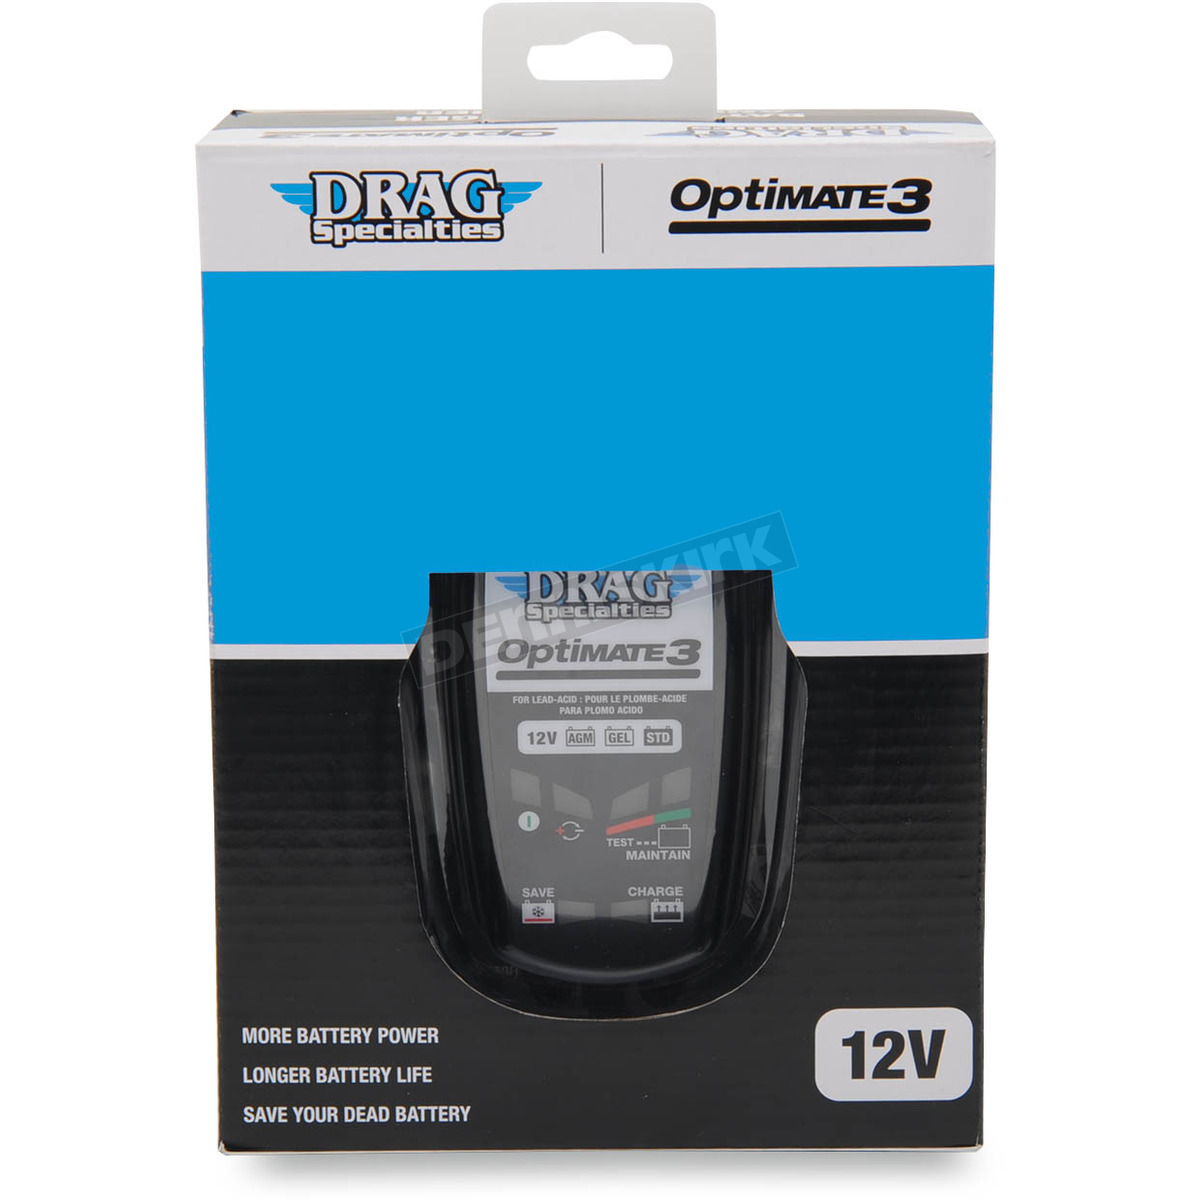 Drag Specialties Optimate 3 Global Battery Charger 3807 0254 Dirt